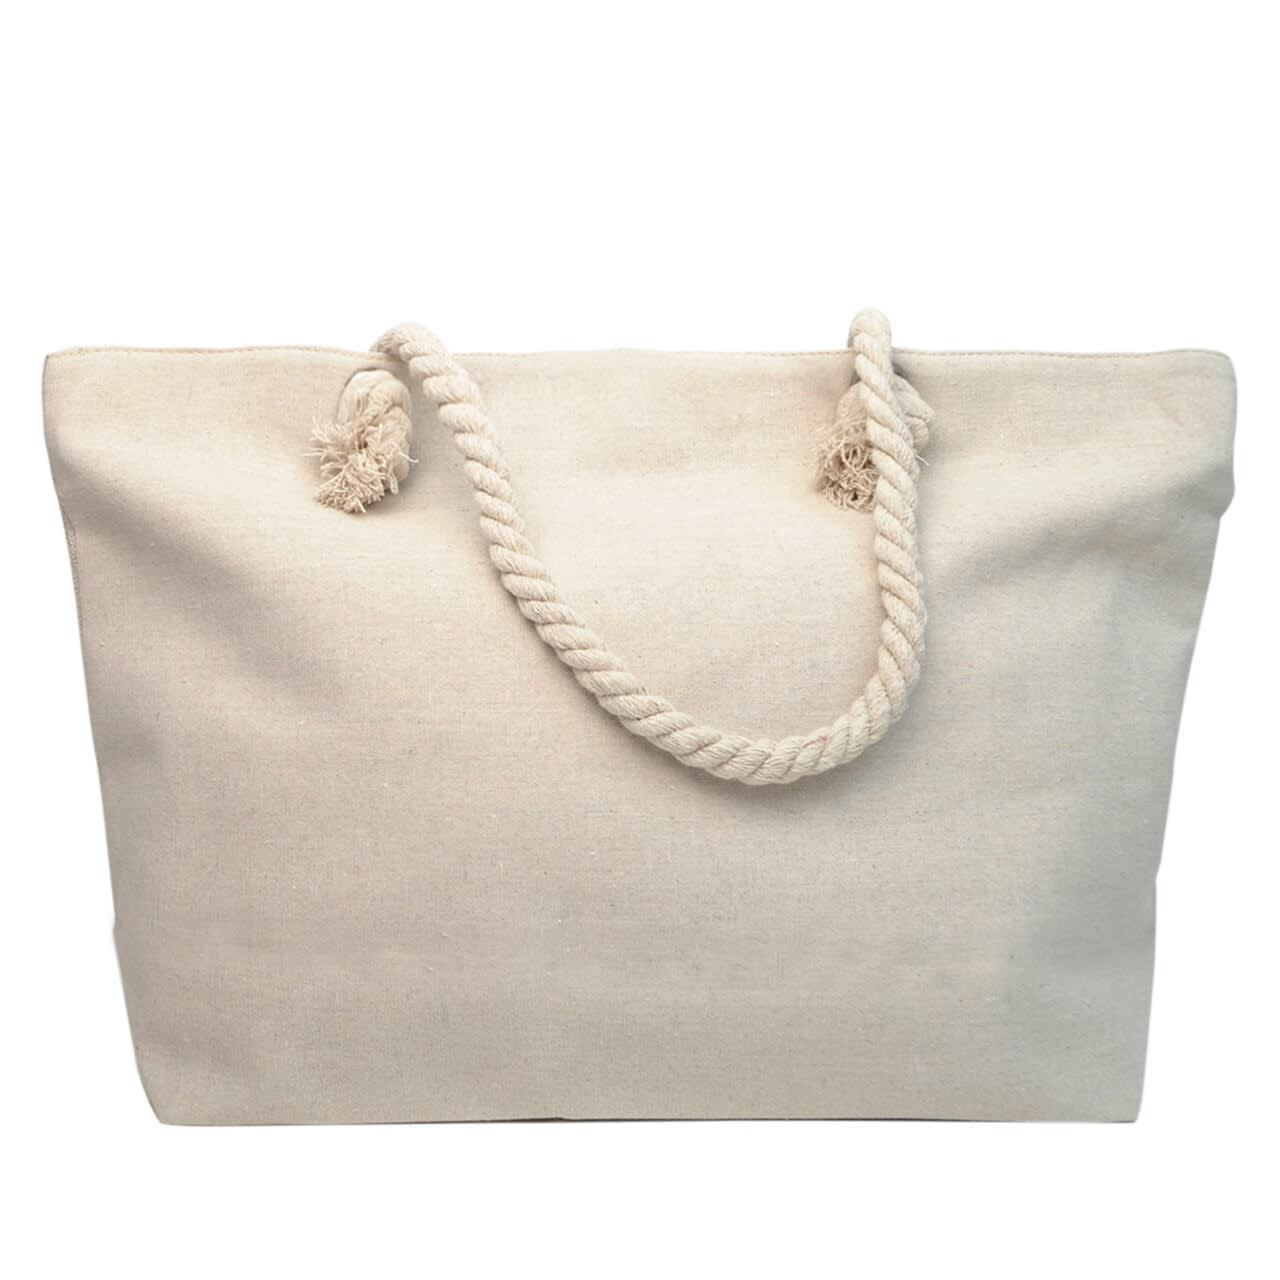 Striped Tropical Rhinestone Tote Bag - Light Beige  - Back